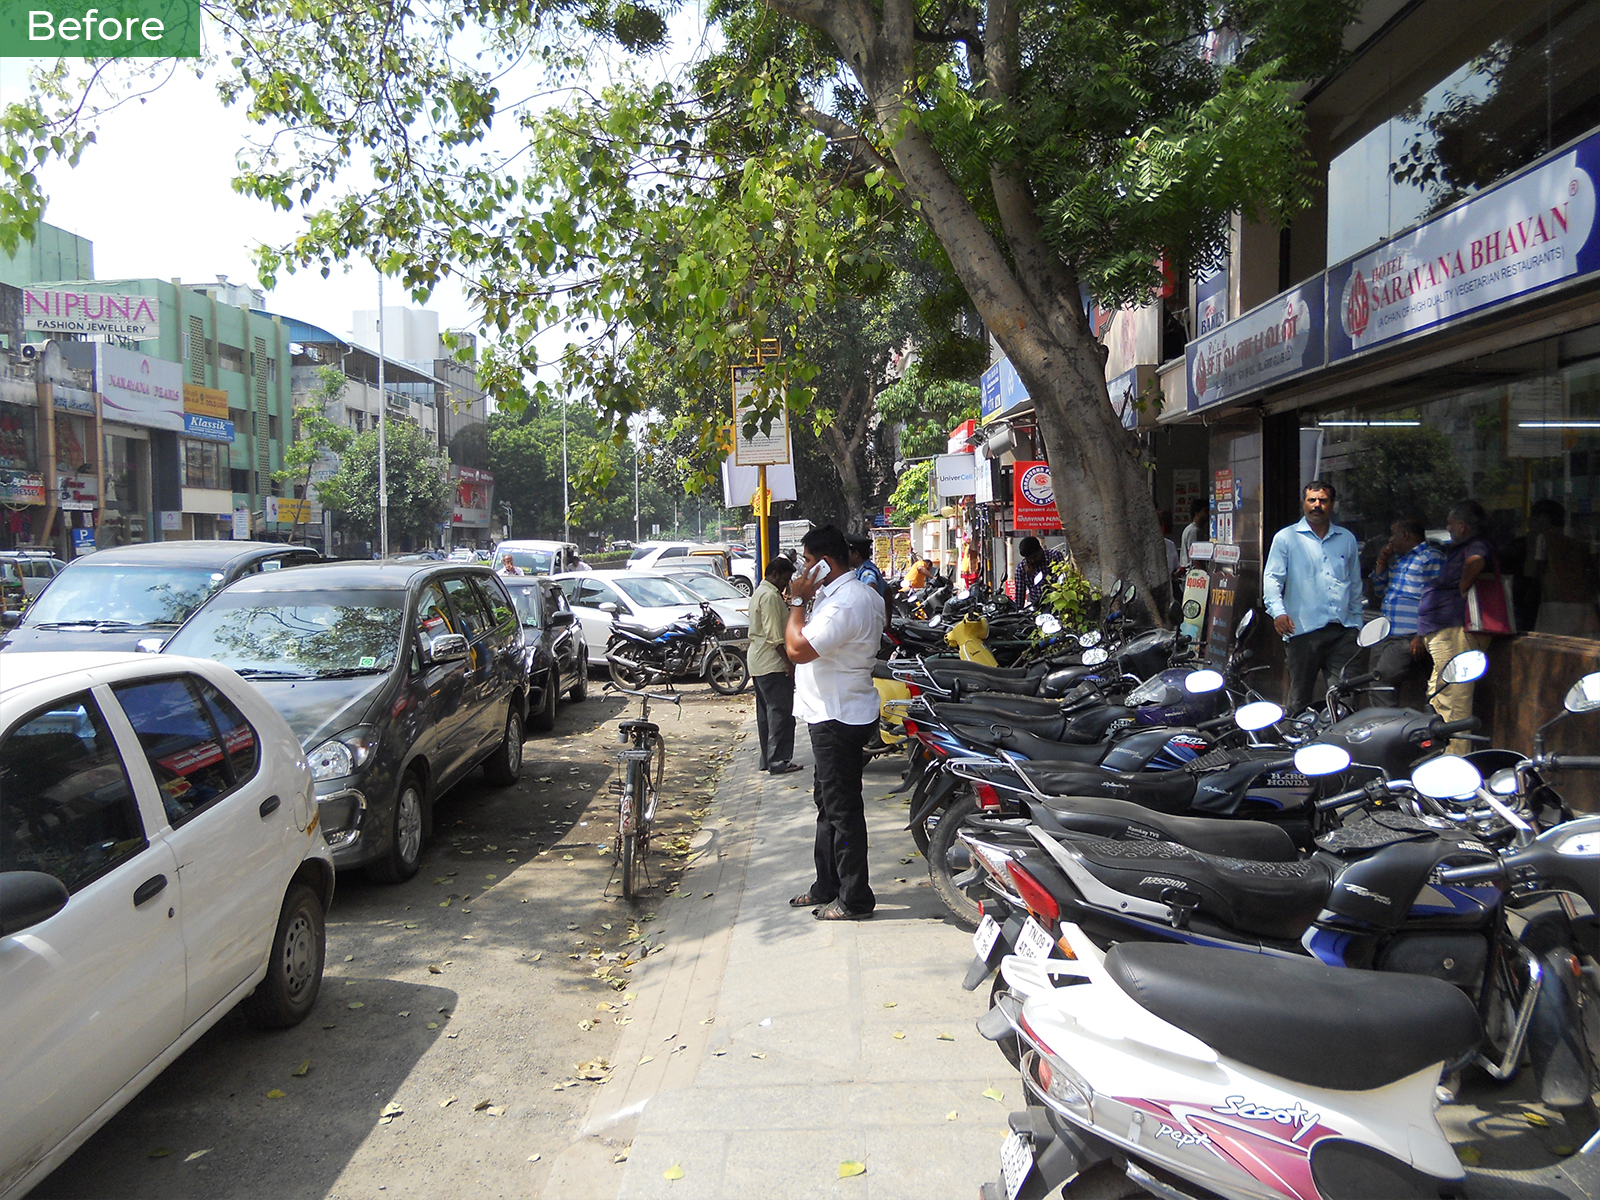 Before-The Pondy Bazaar Pedestrian Plaza